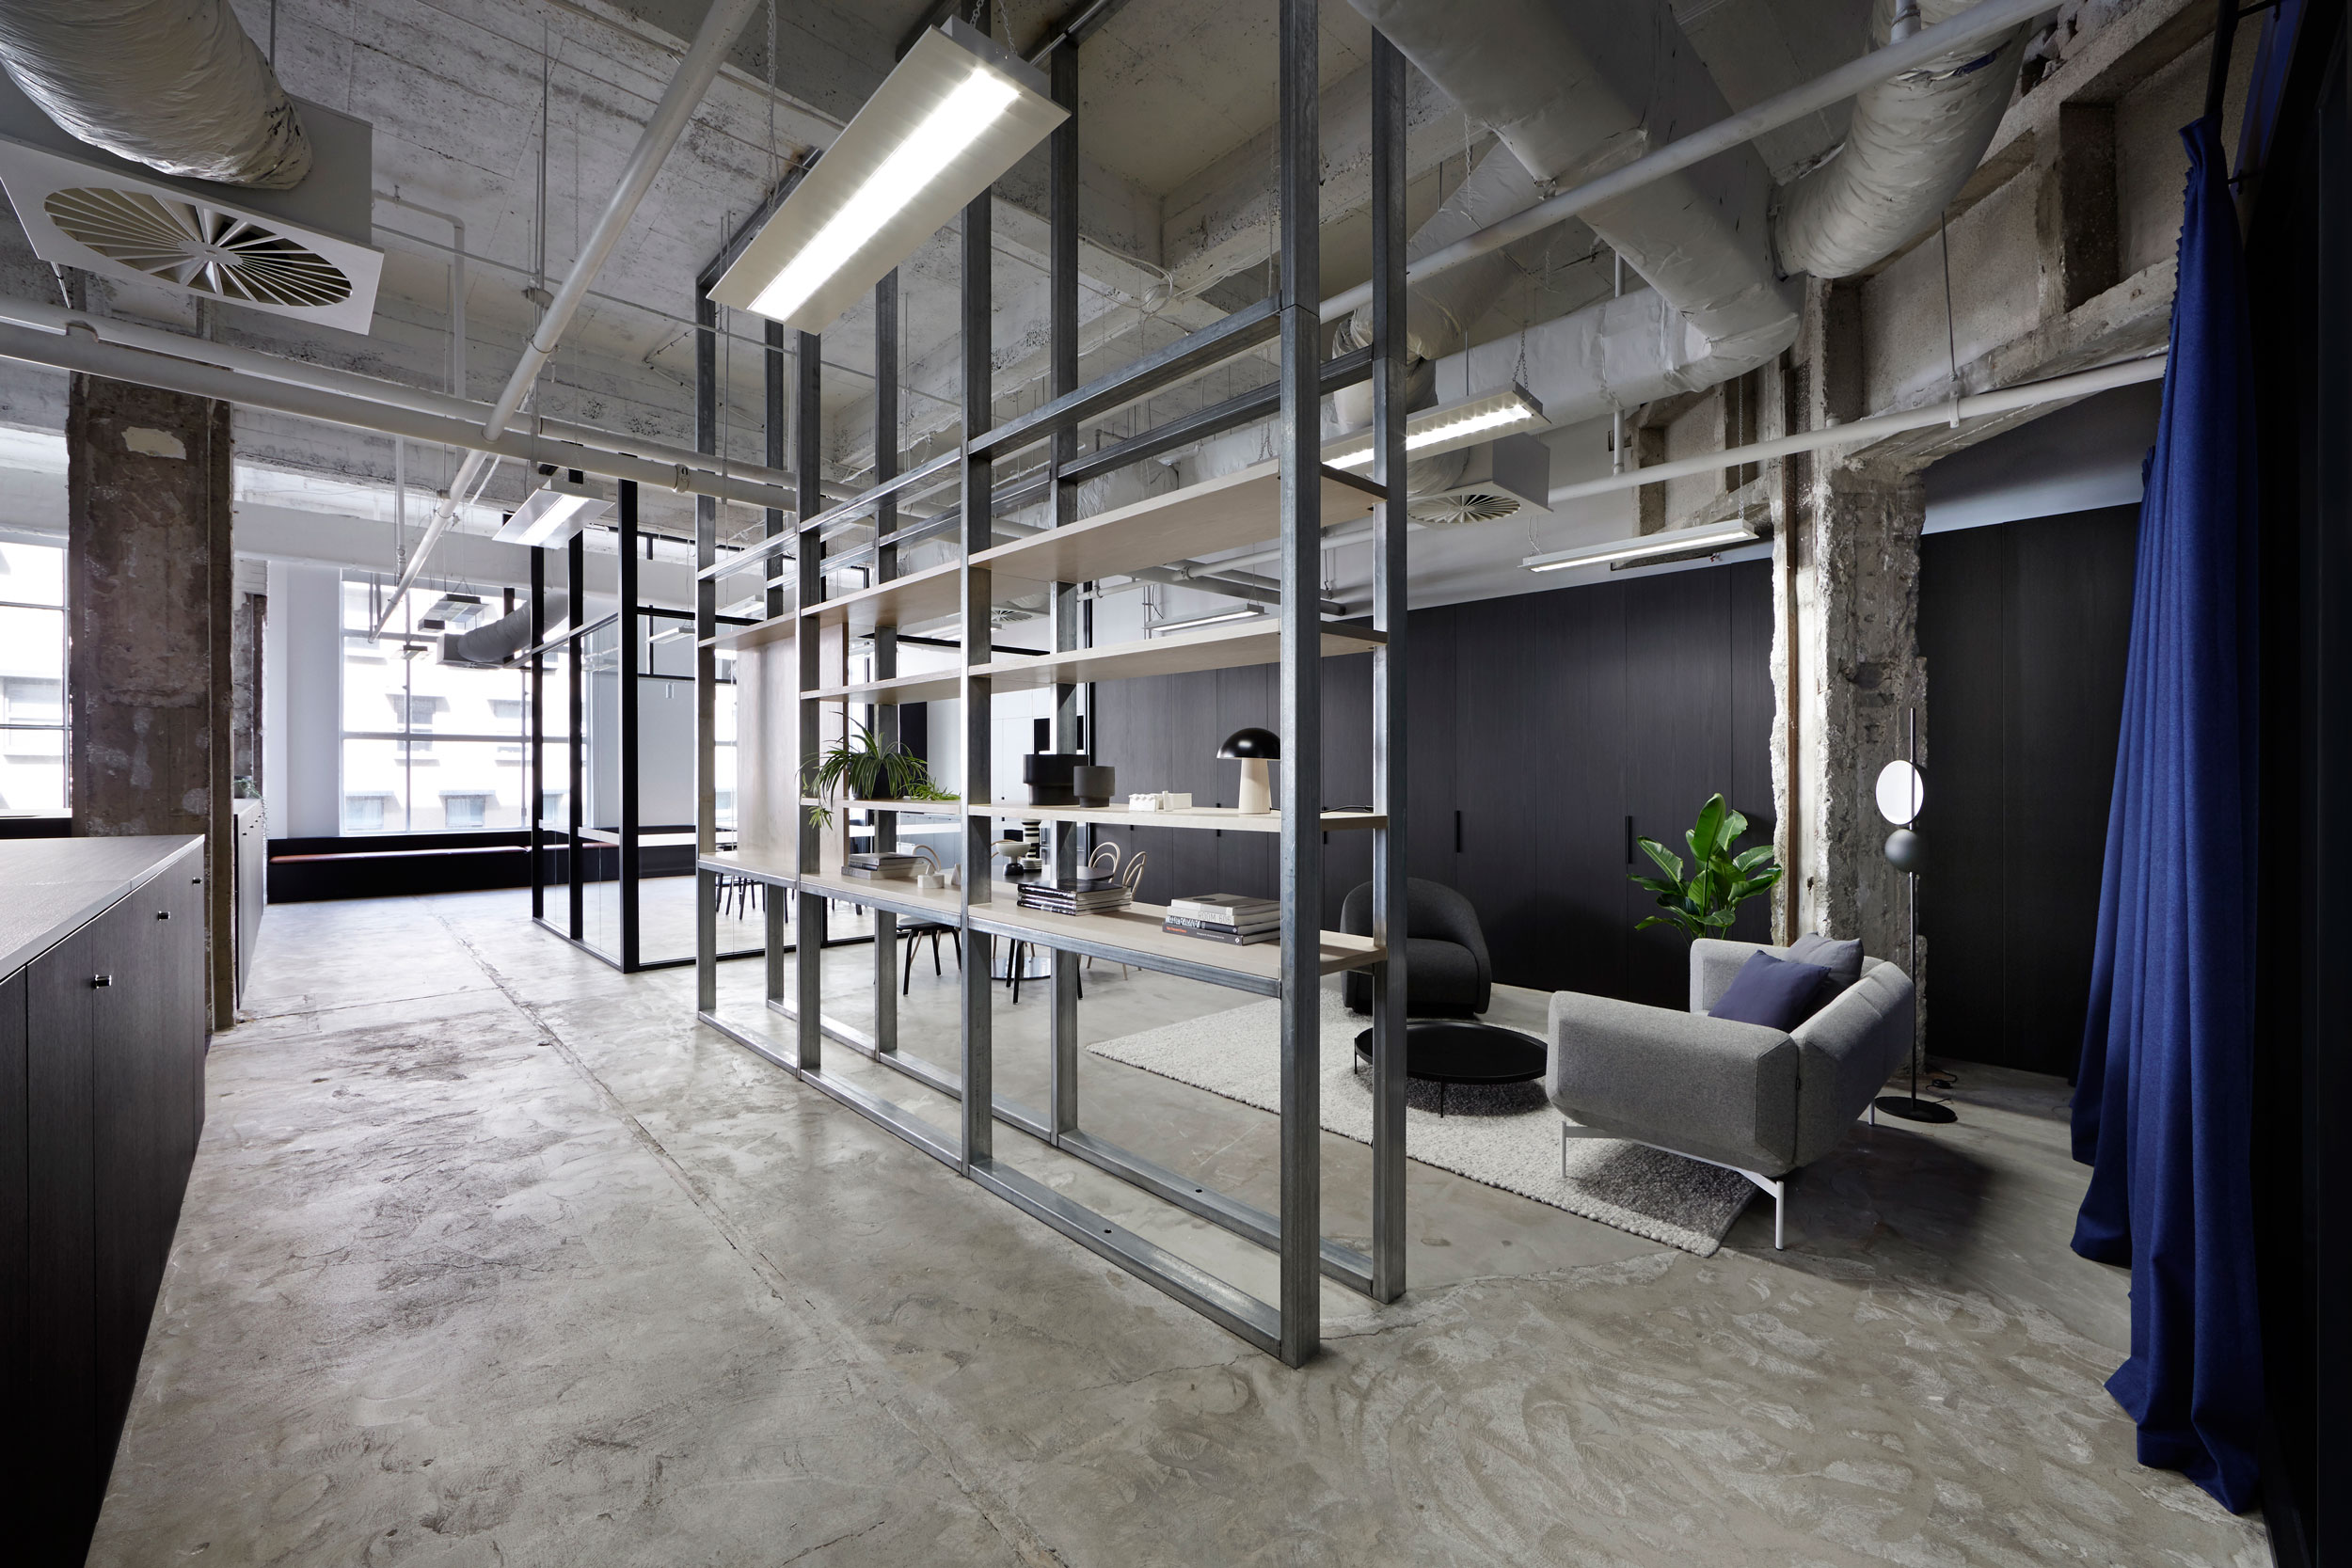 Sarah_Anderson_Photography_Studio_Esteta_Archtects_Fleetwood_Office_Melbourne_Interior